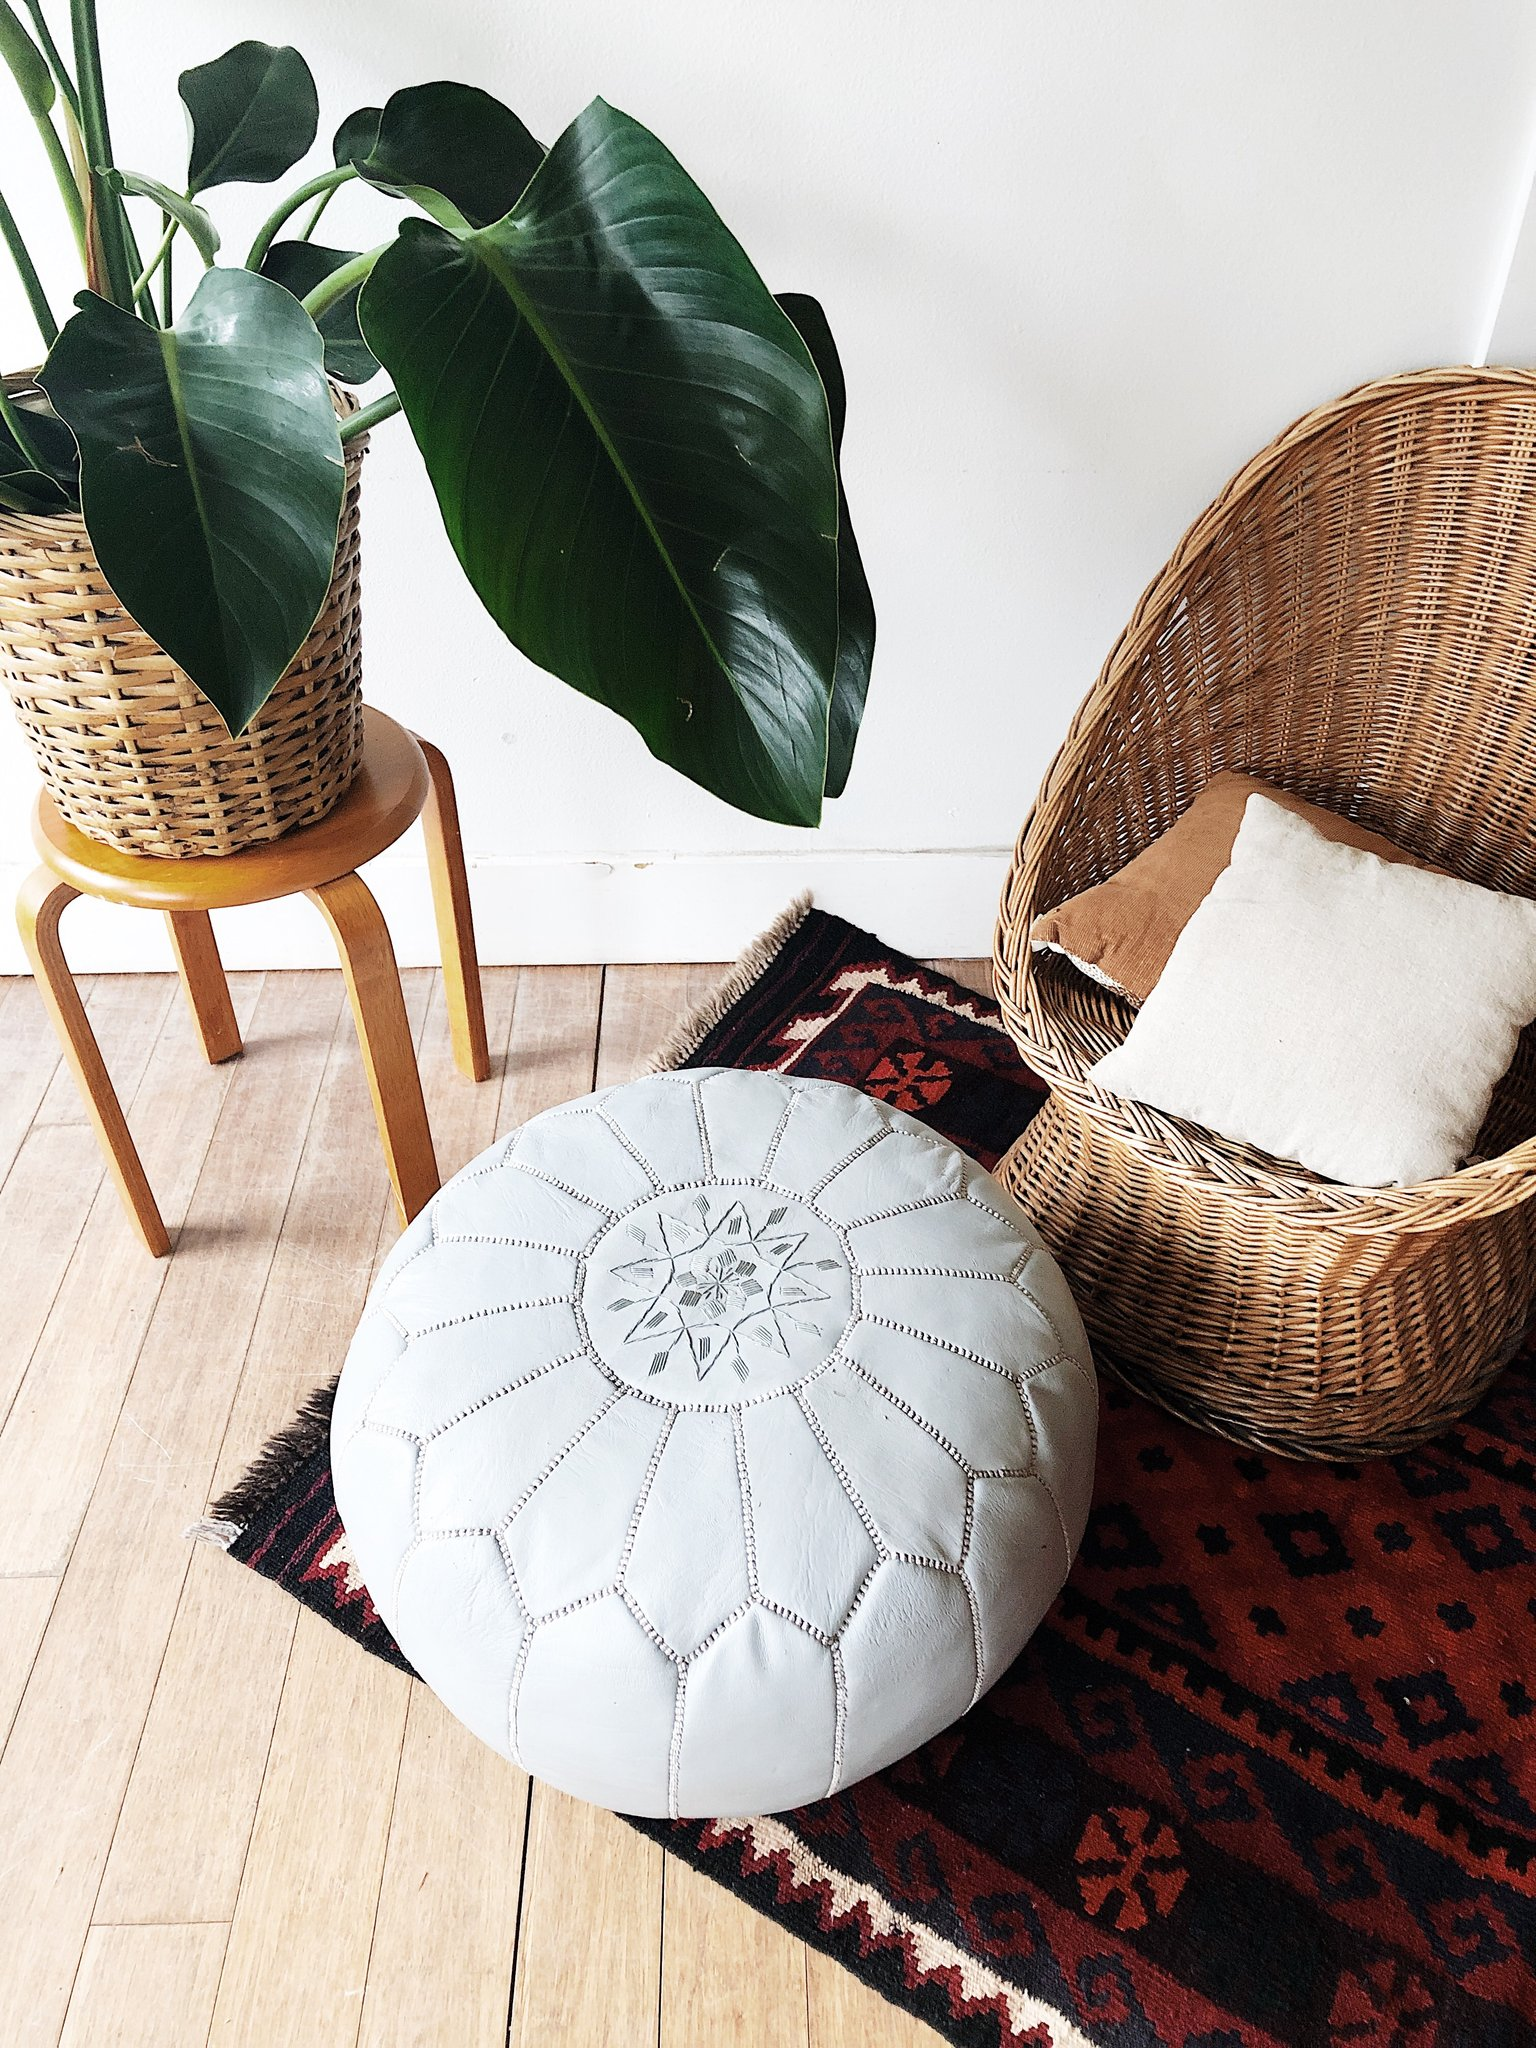 Moroccan Poufs: Add Colourful Cushions to your Home